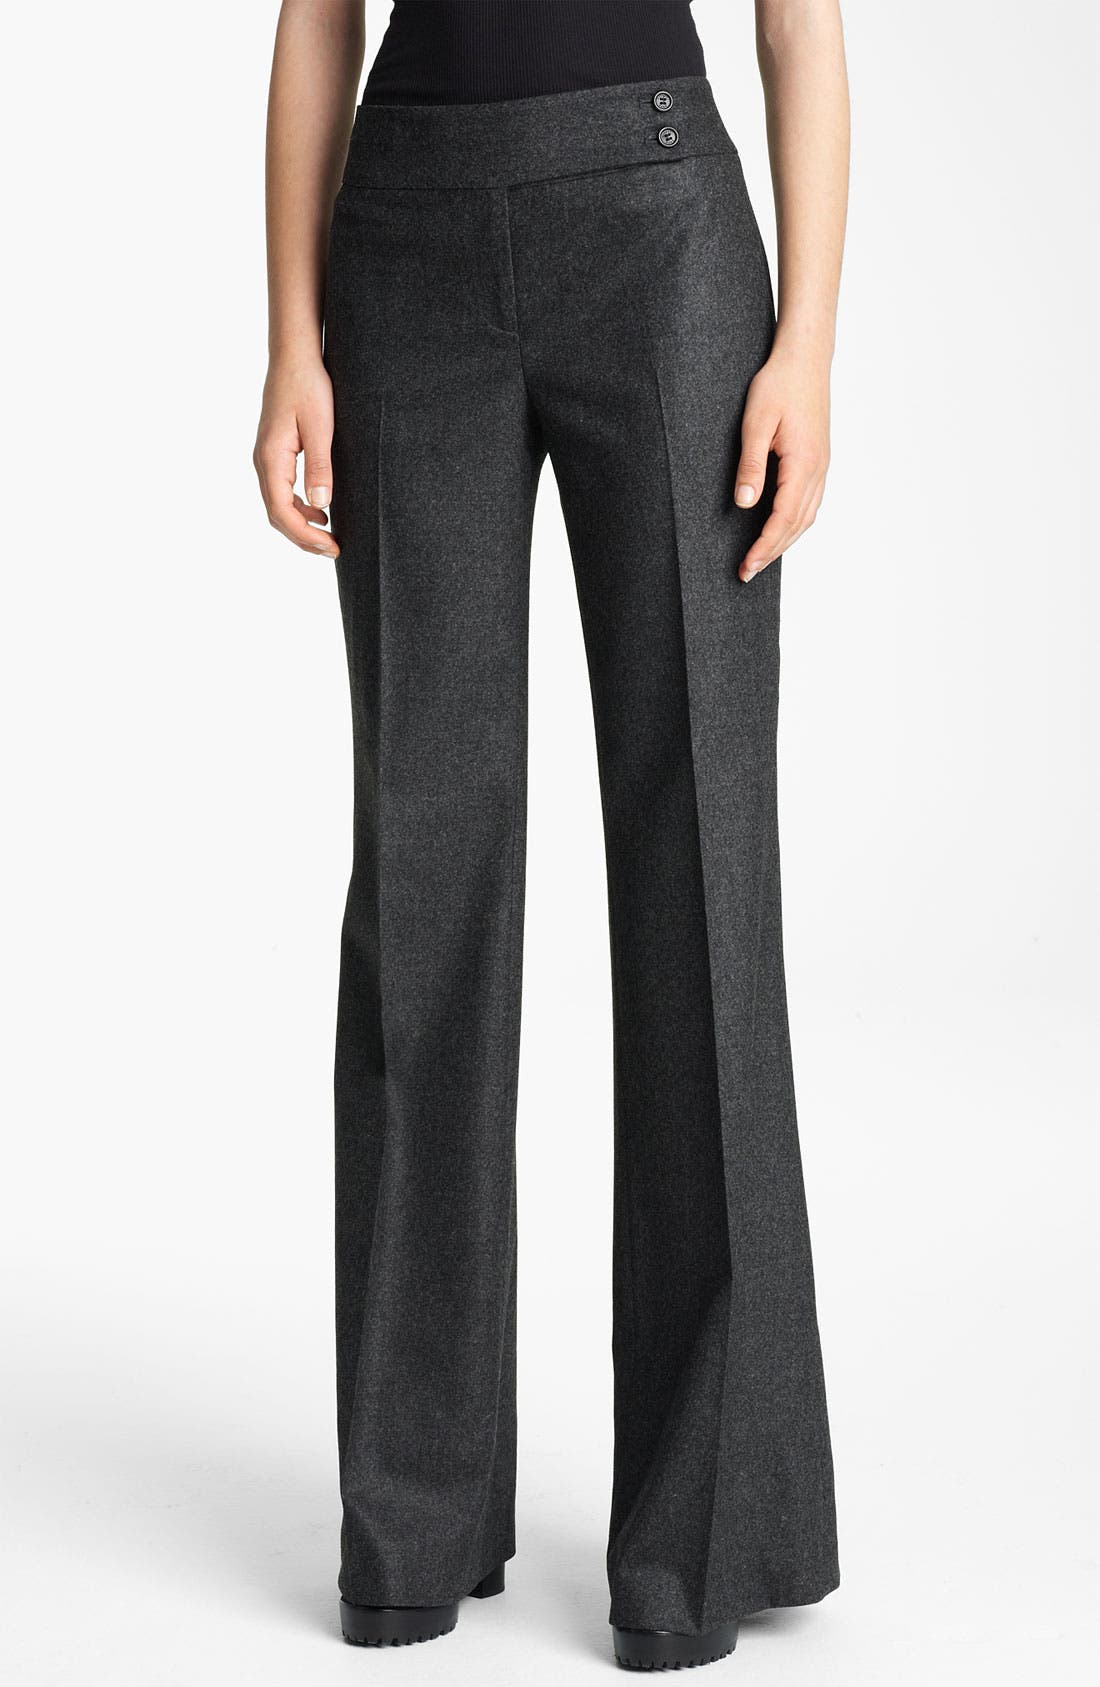 Alternate Image 1 Selected - Michael Kors Flare Leg Stretch Flannel Pants